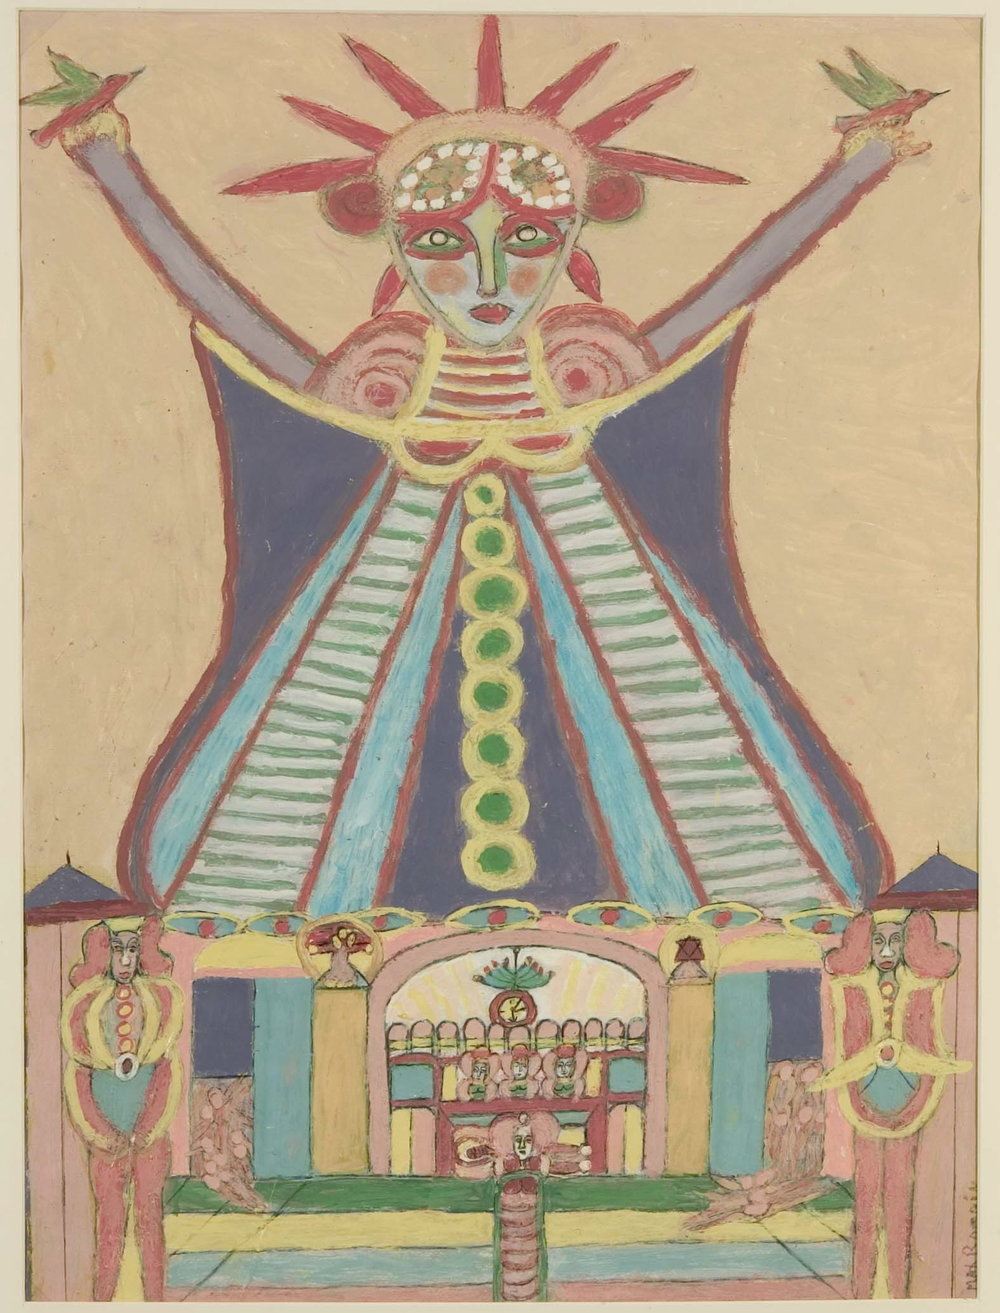 Max Romain (American, b. 1930).  Statue of Liberty , 1997. Paint on paper, 25 x 19 in. Intuit: The Center for Intuitive and Outsider Art, gift of Aarne Anton, 2010.8.2